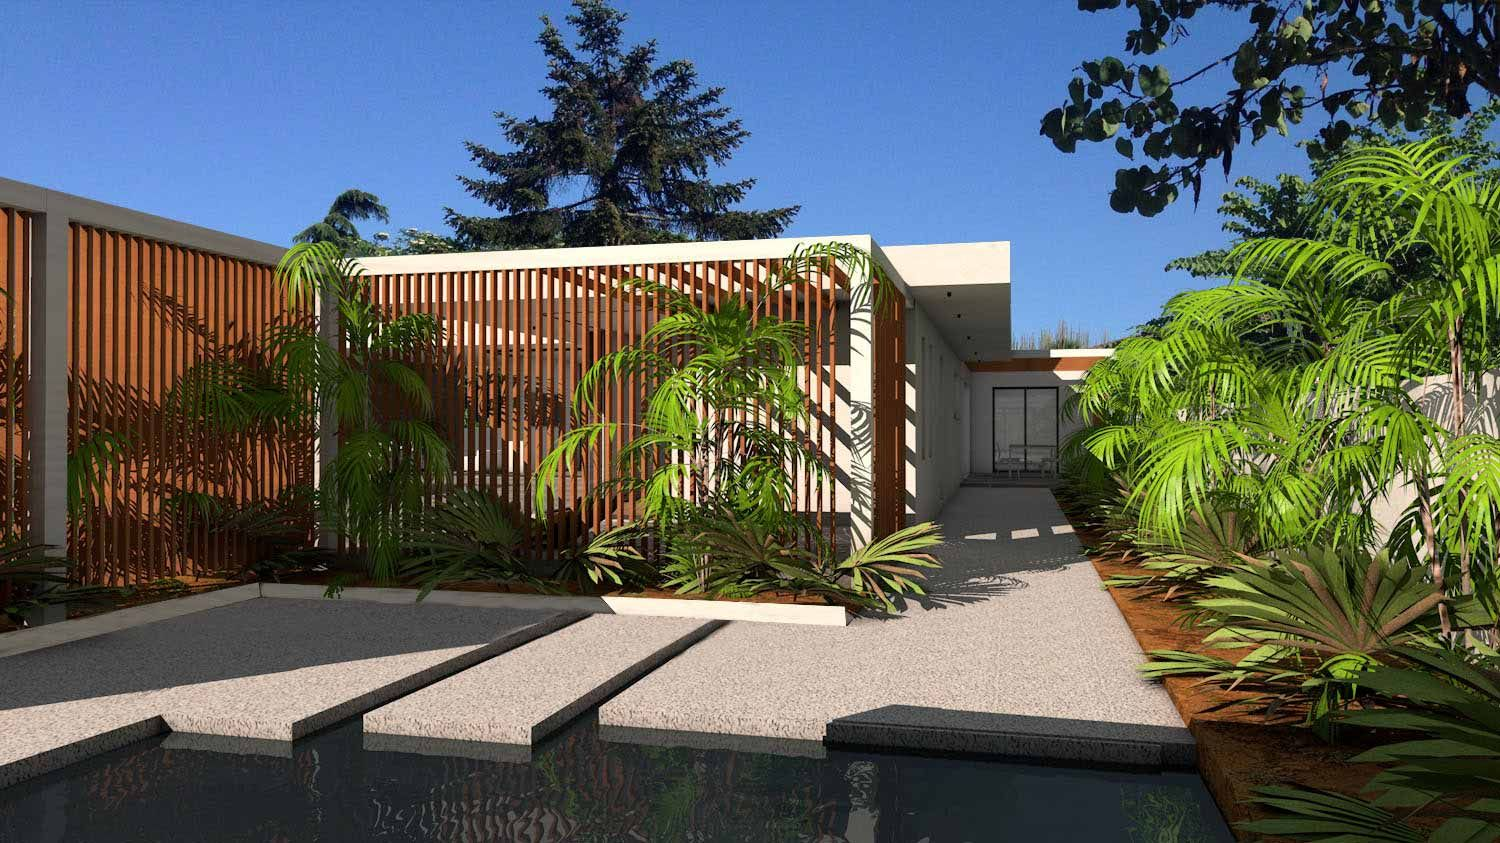 Atelier d 39 architecture sc nario maison contemporaine d for Architecture et design maison